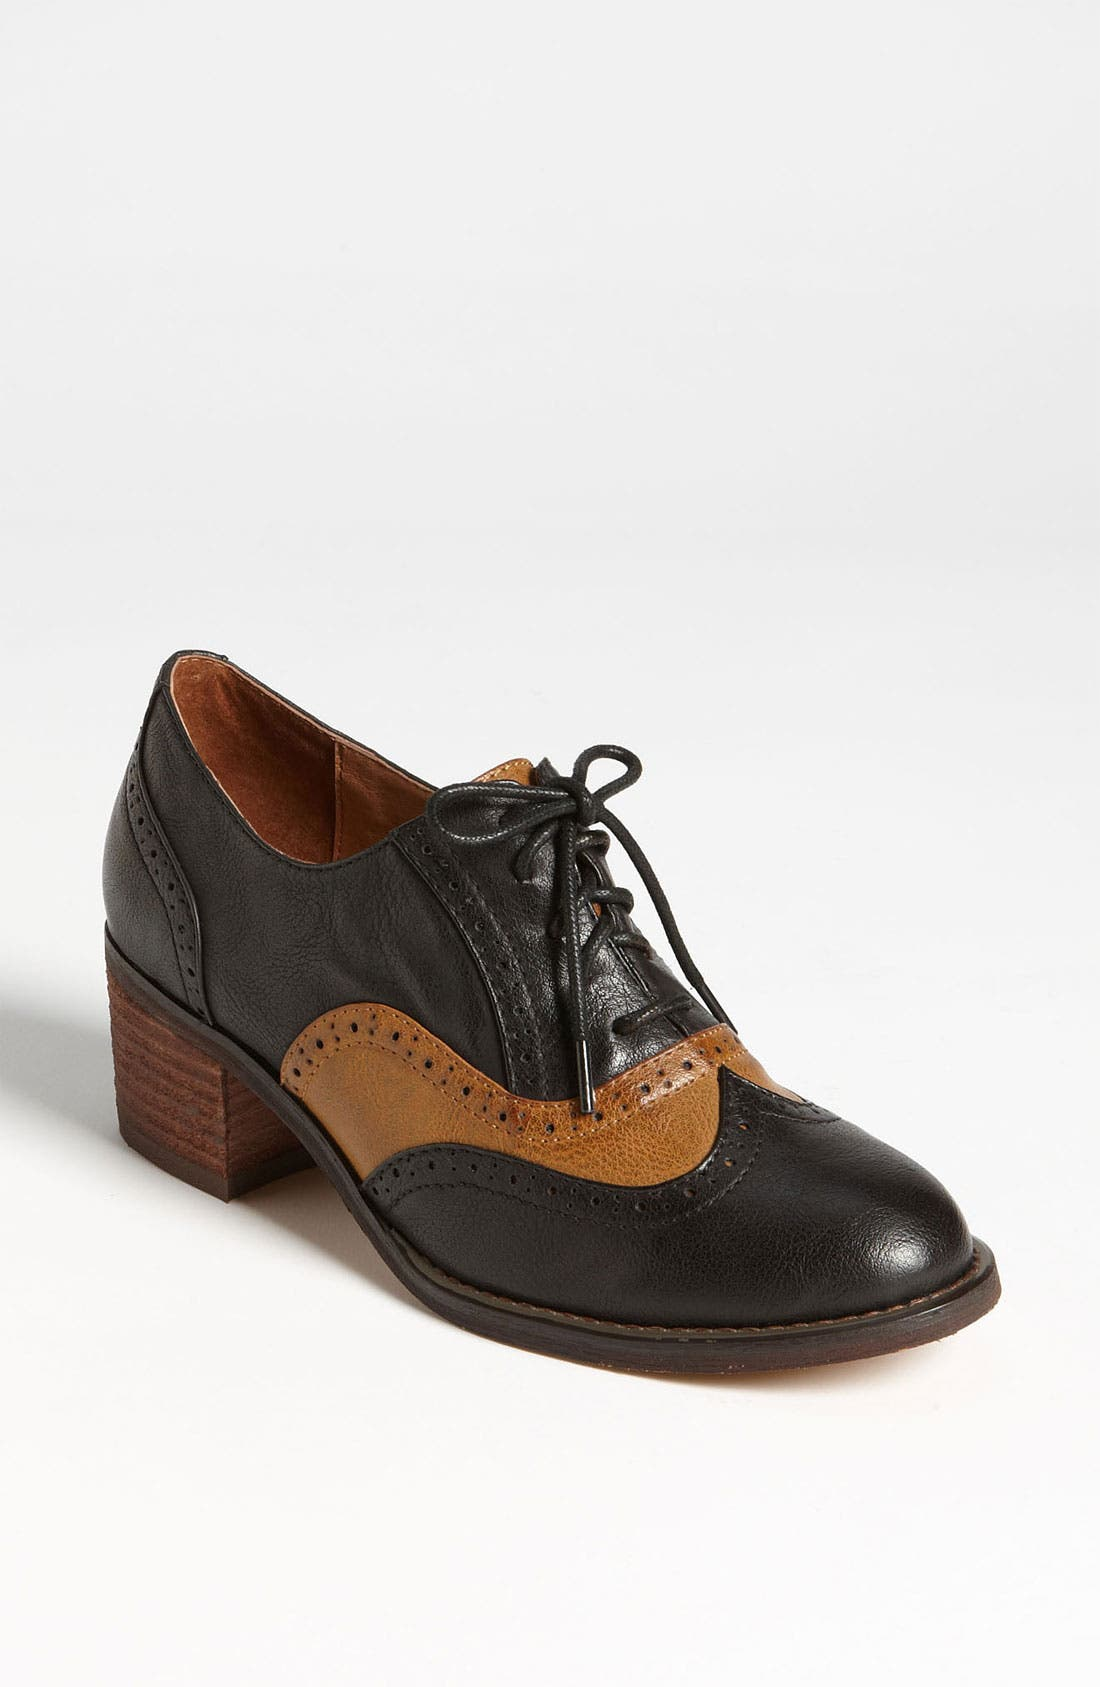 Main Image - Jeffrey Campbell 'Williams' Oxford